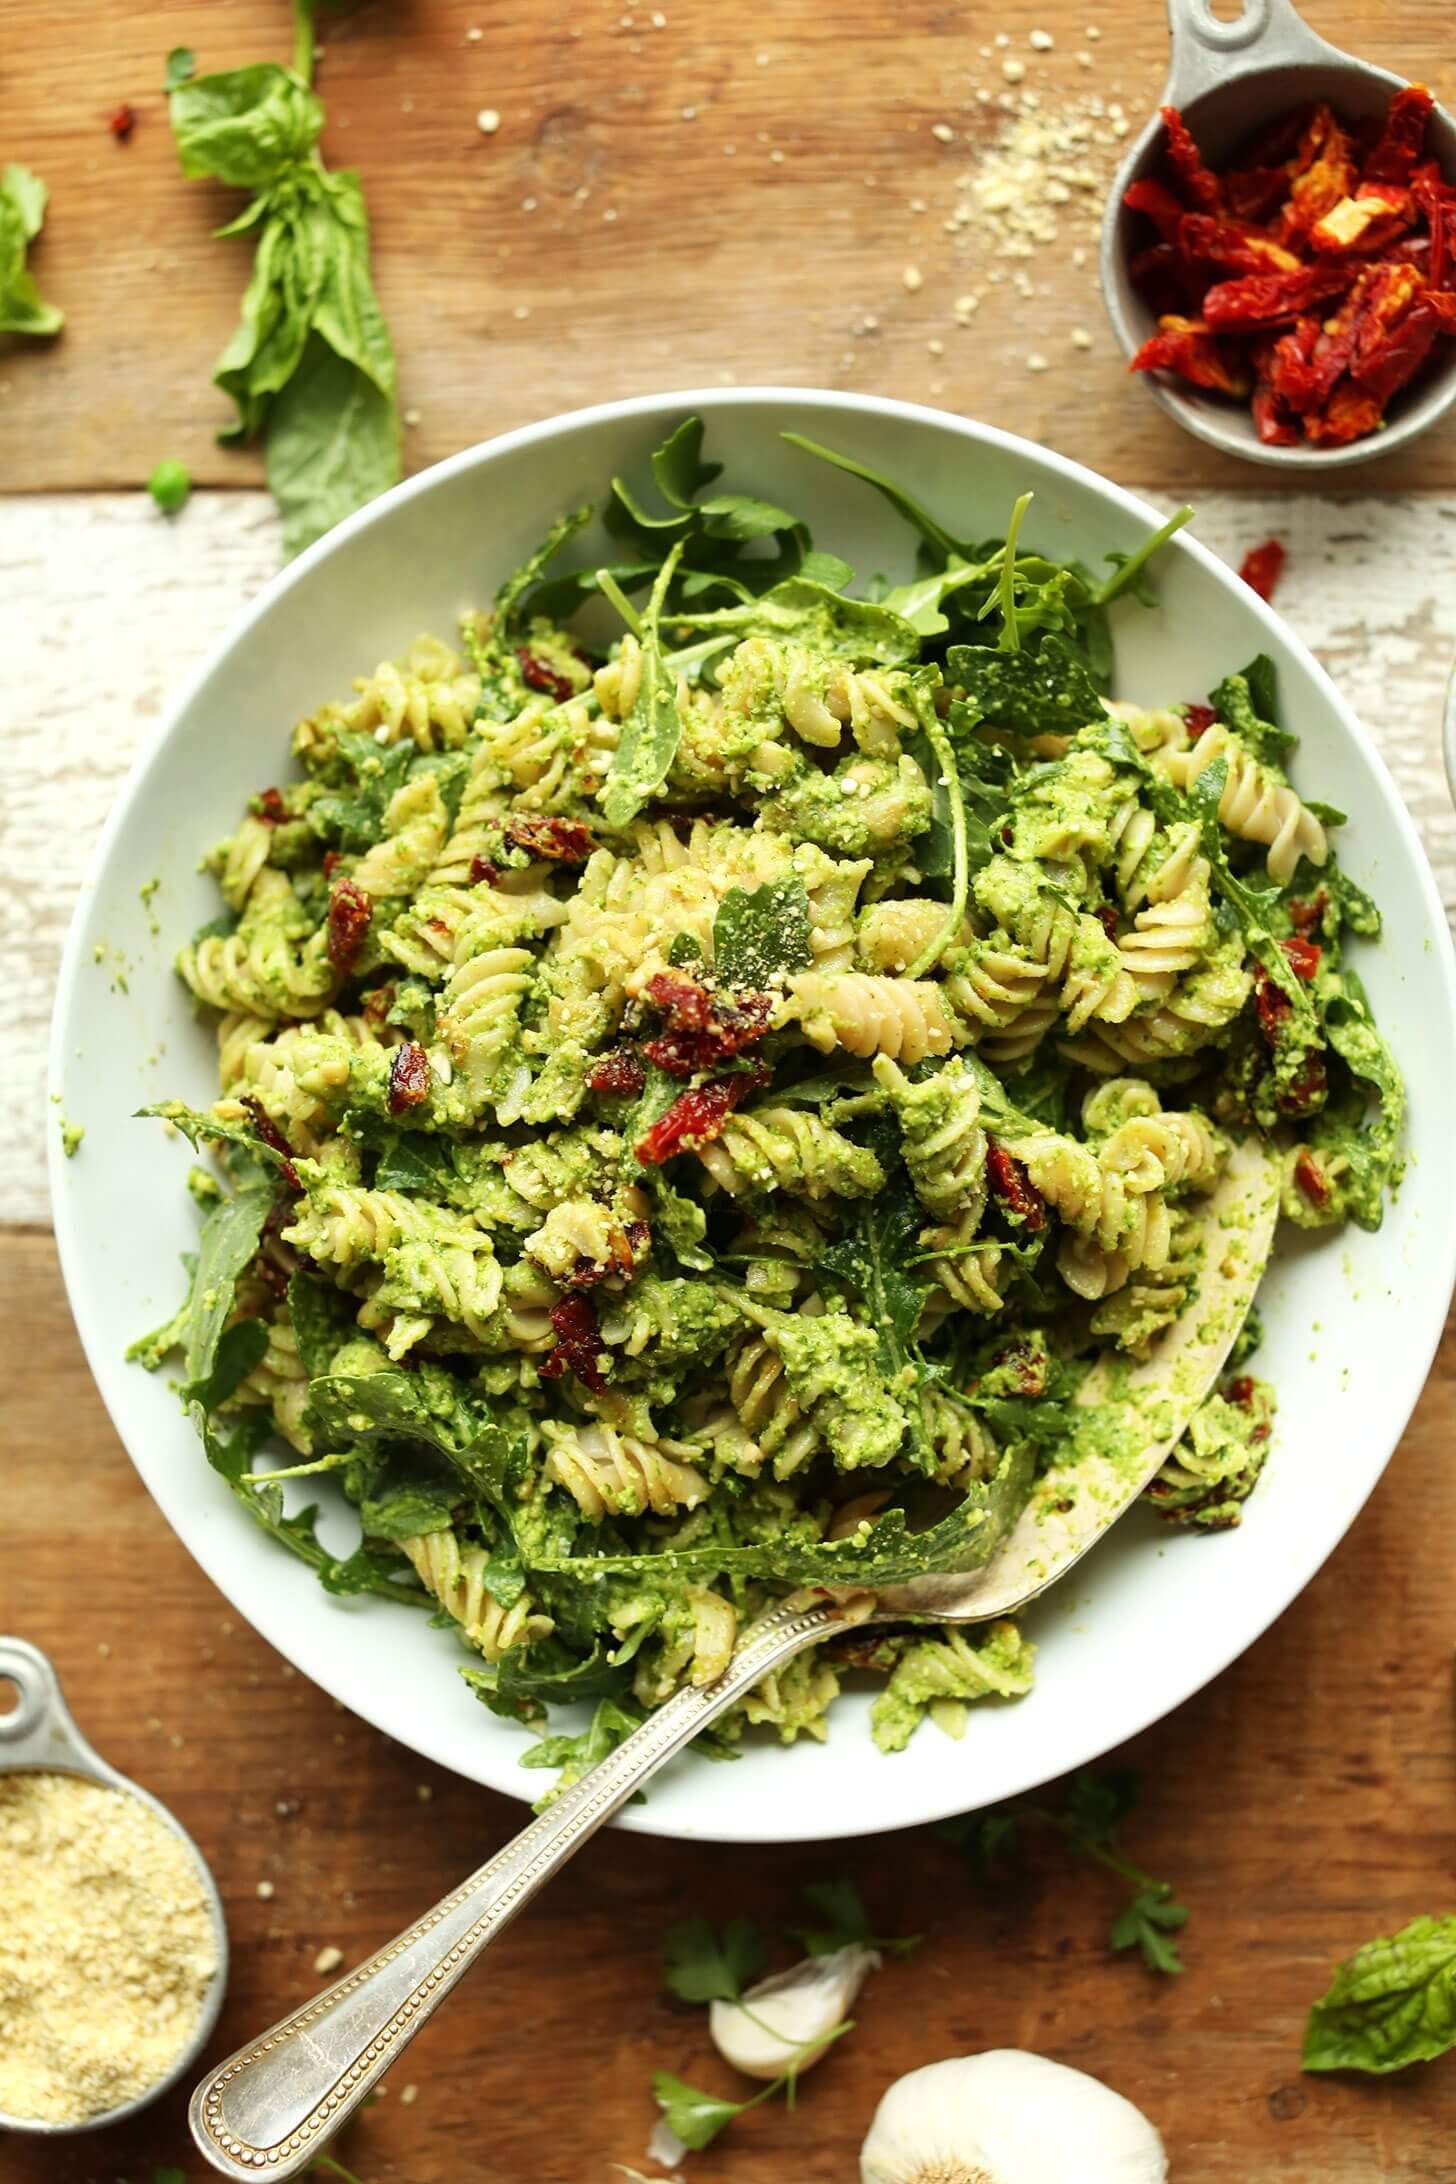 Pea Pesto Pasta with Sun-Dried Tomatoes & Arugula